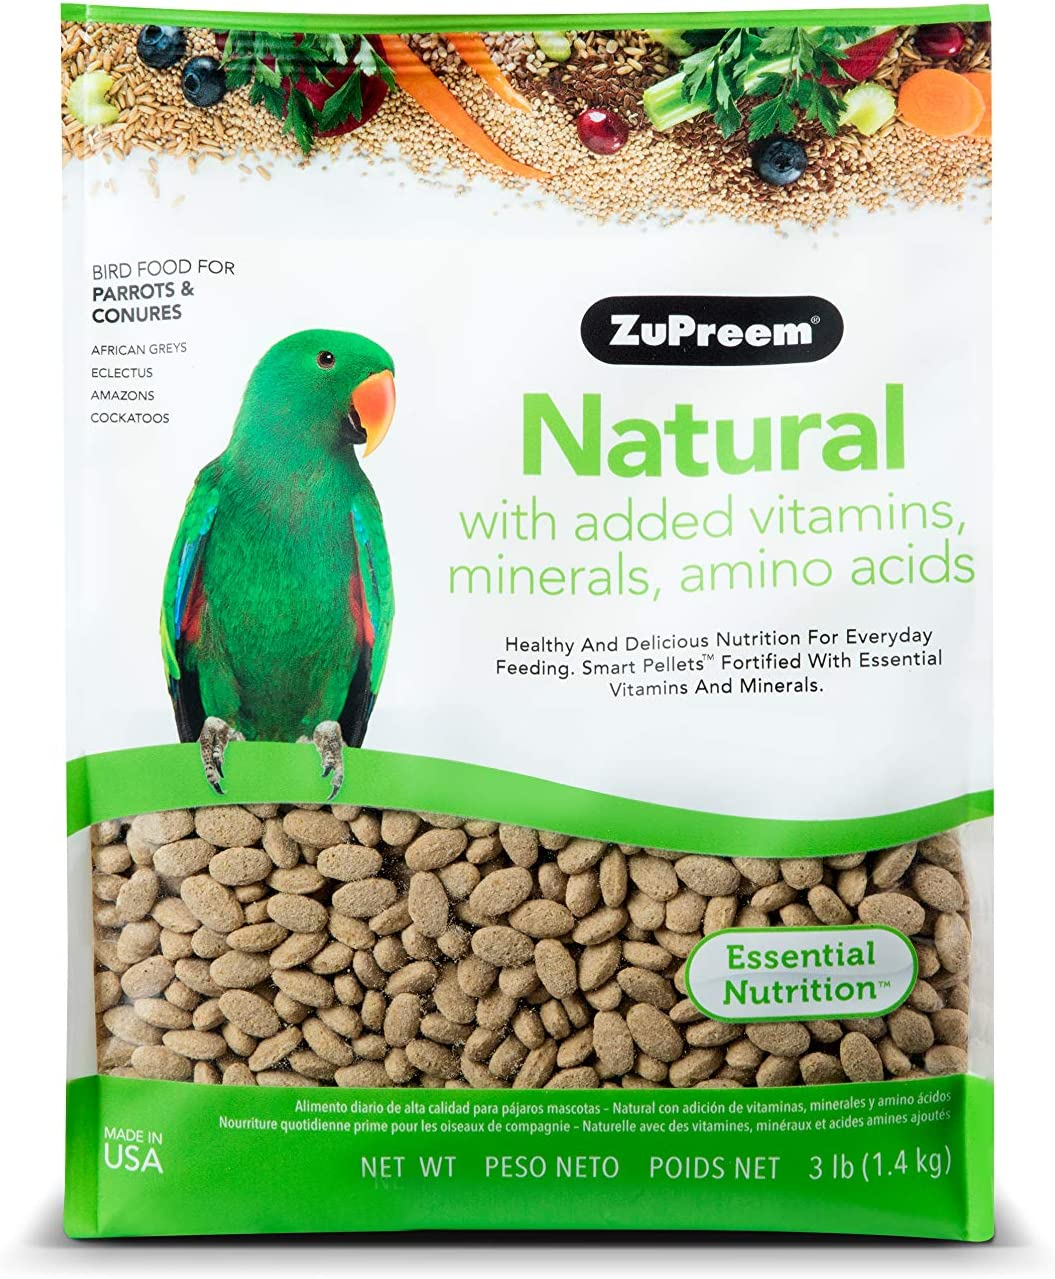 ZuPreem Natural Bird Food Smart Pellets for Parrots and Conures | Made in USA, Essential Vitamins, Minerals, Amino Acids for Caiques, African Greys, Senegals, Amazons, Eclectus